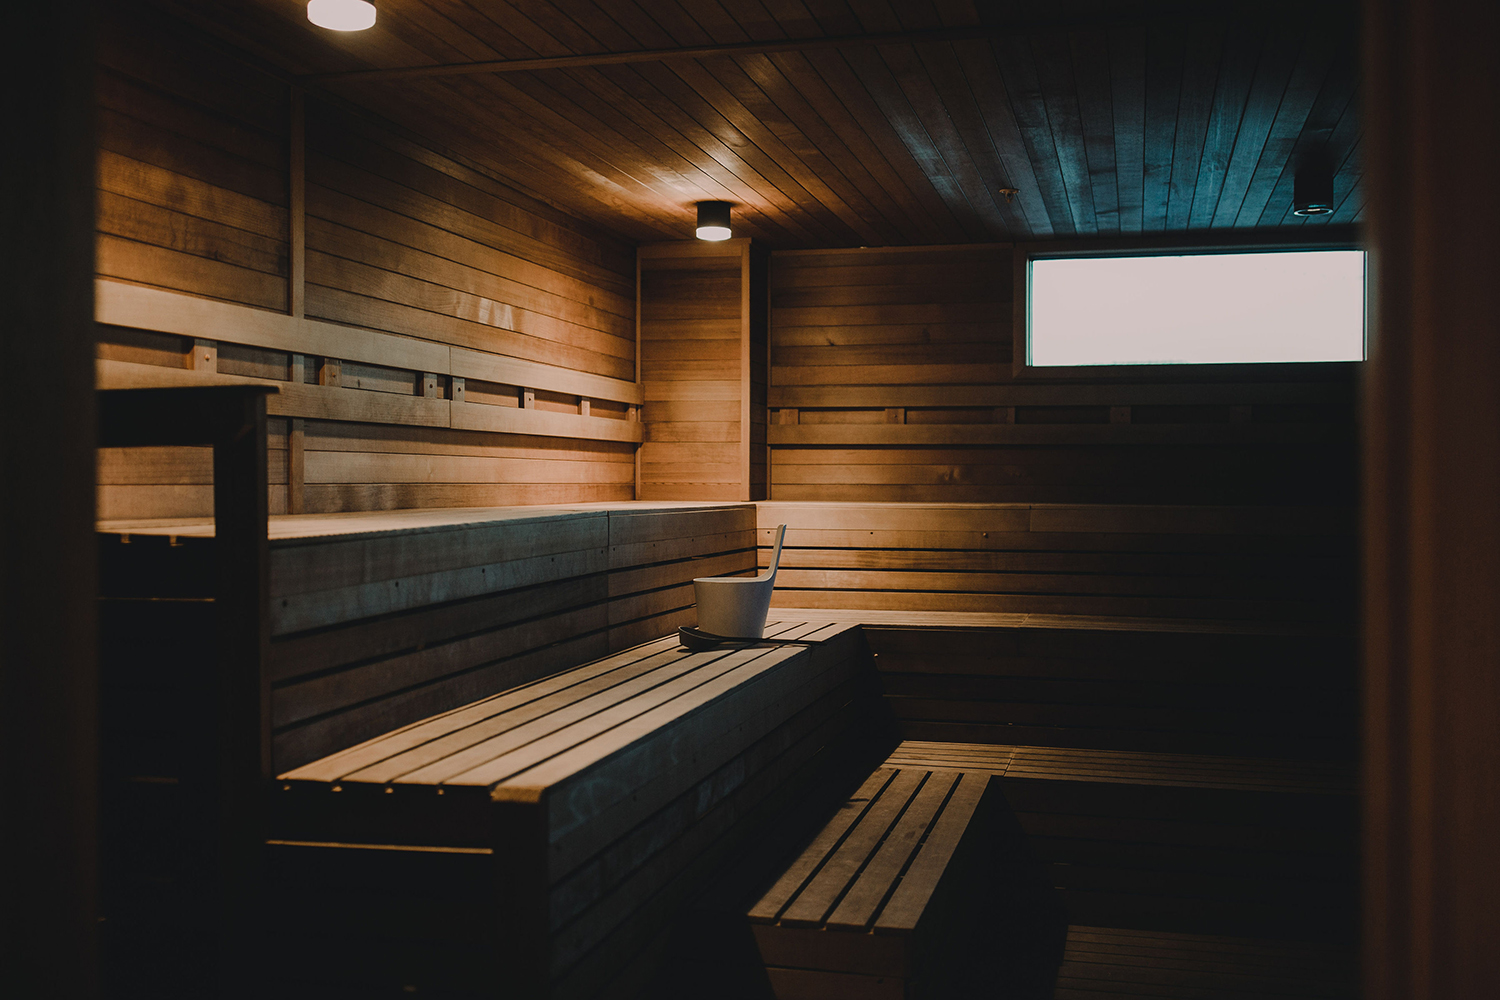 Hewing Hotel's Meet the Heat sauna program brings the wellness benefits of sweat bathing to life throughout North America with sauna experiences, trainings, and product development.